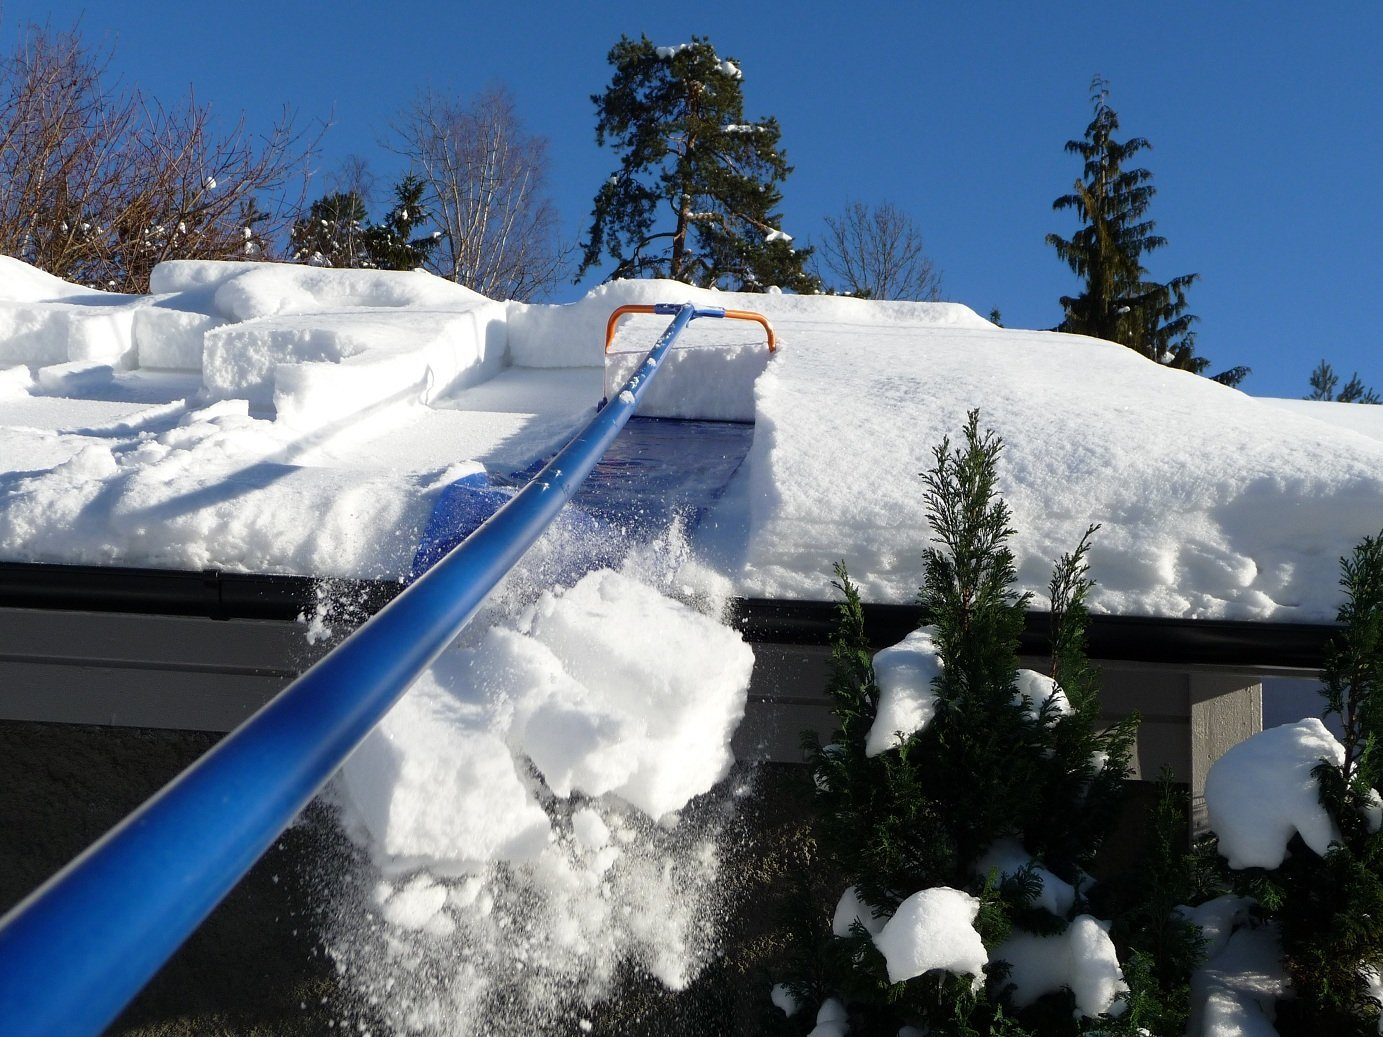 Avalanche - Original Roof Snow Removal System